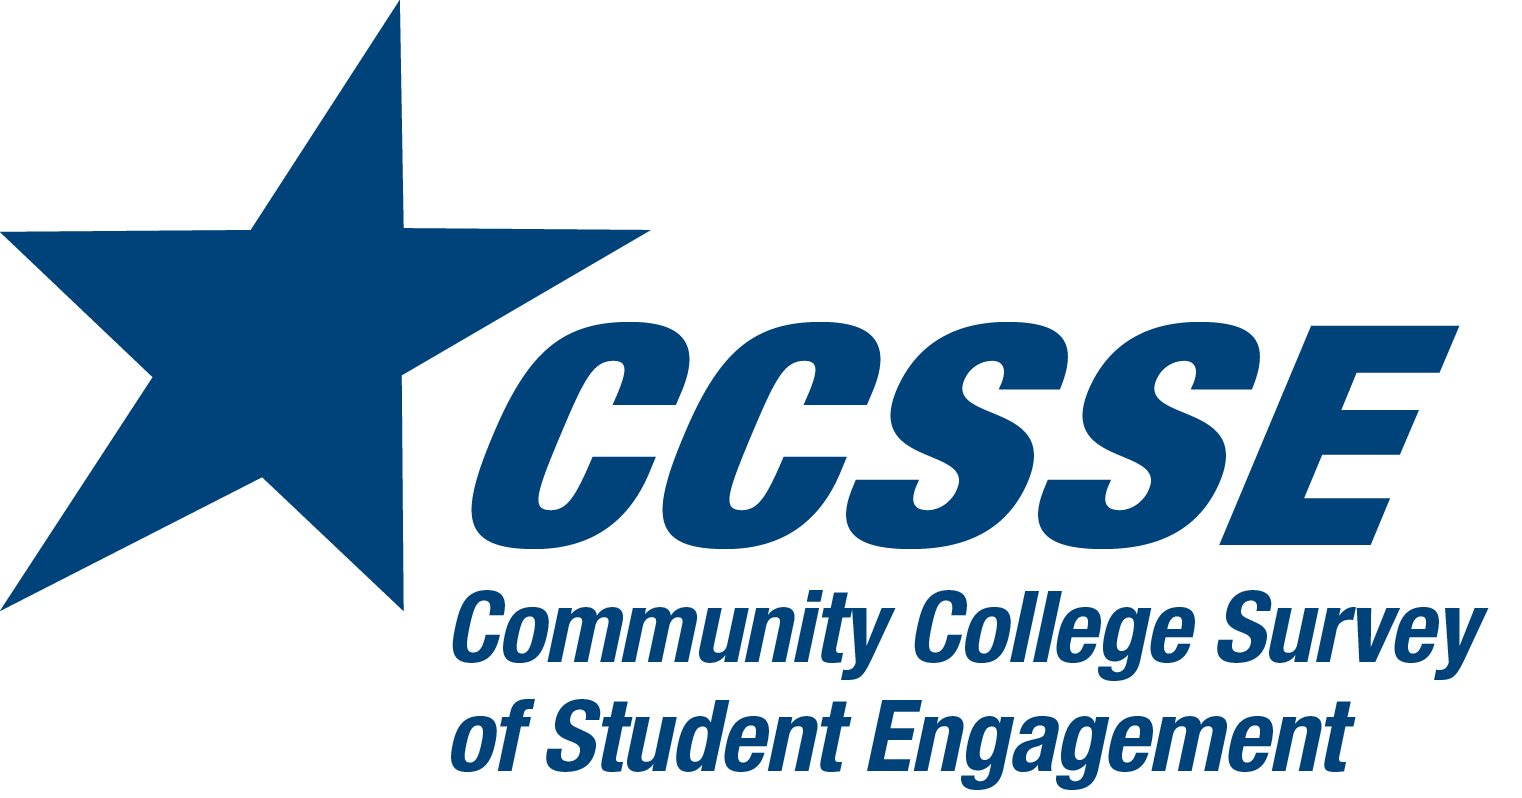 Community College Survey of Student Engagement Logo